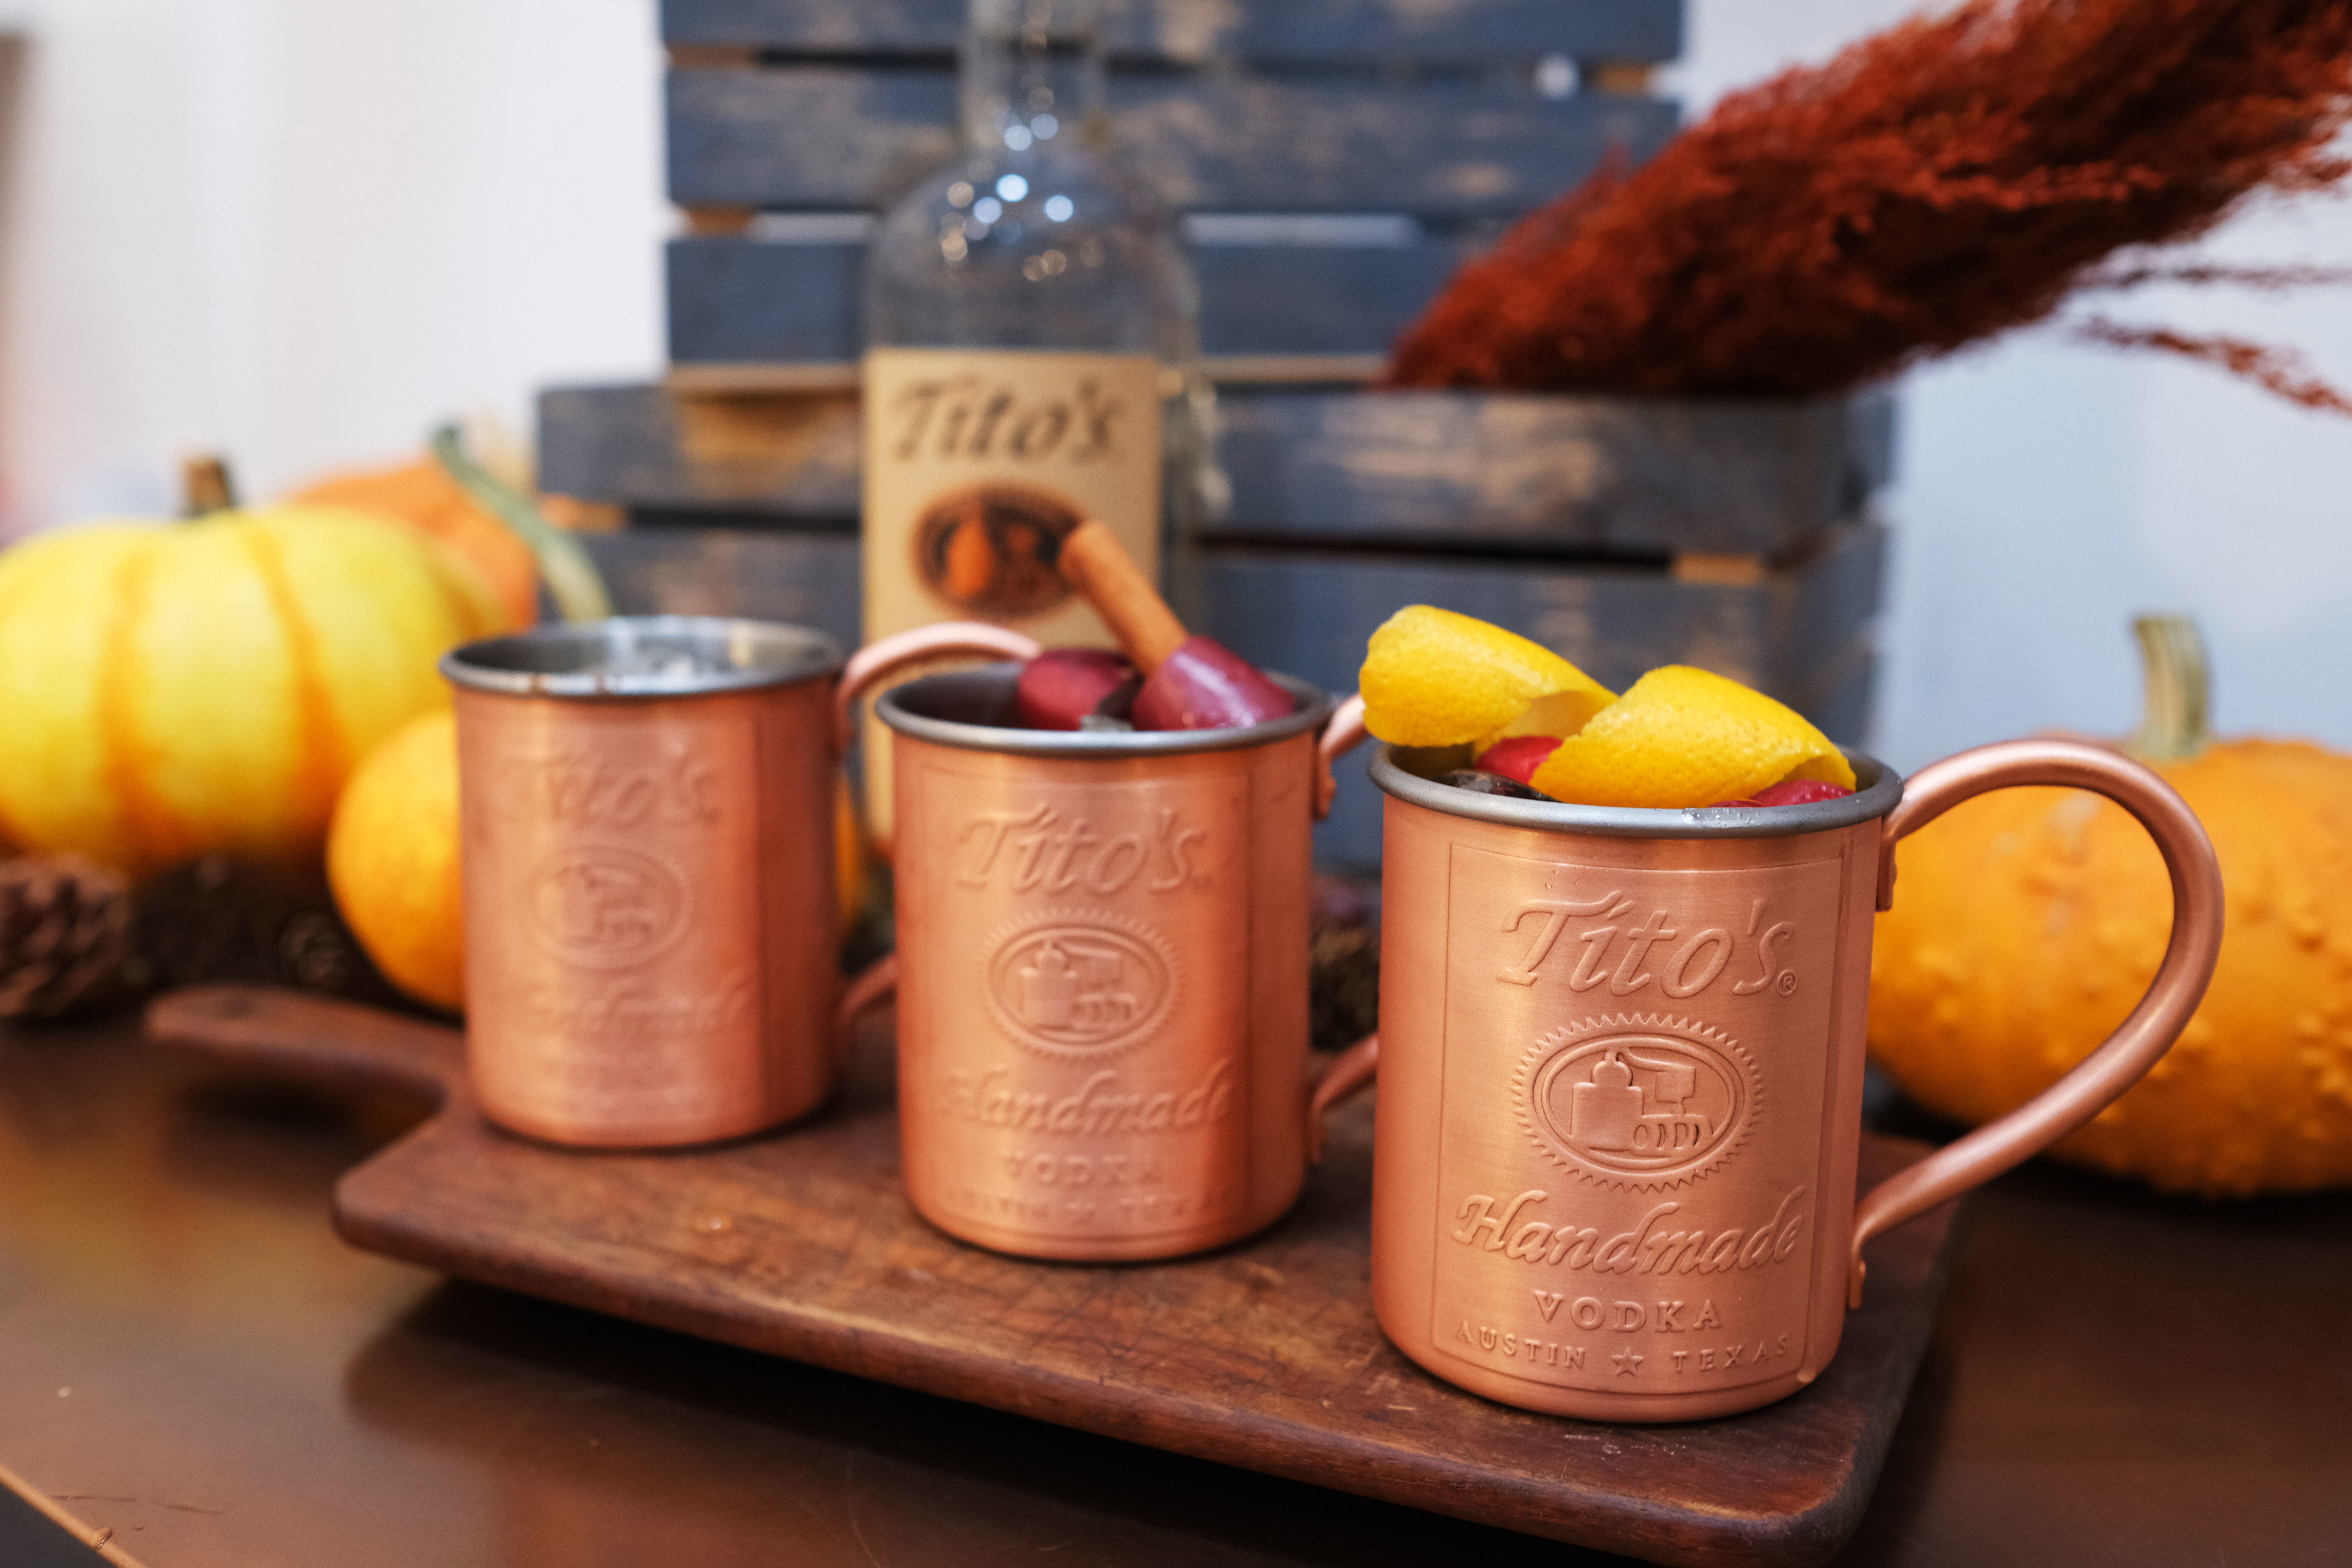 Tito's Vodka Moscow Mule with berries and lemon